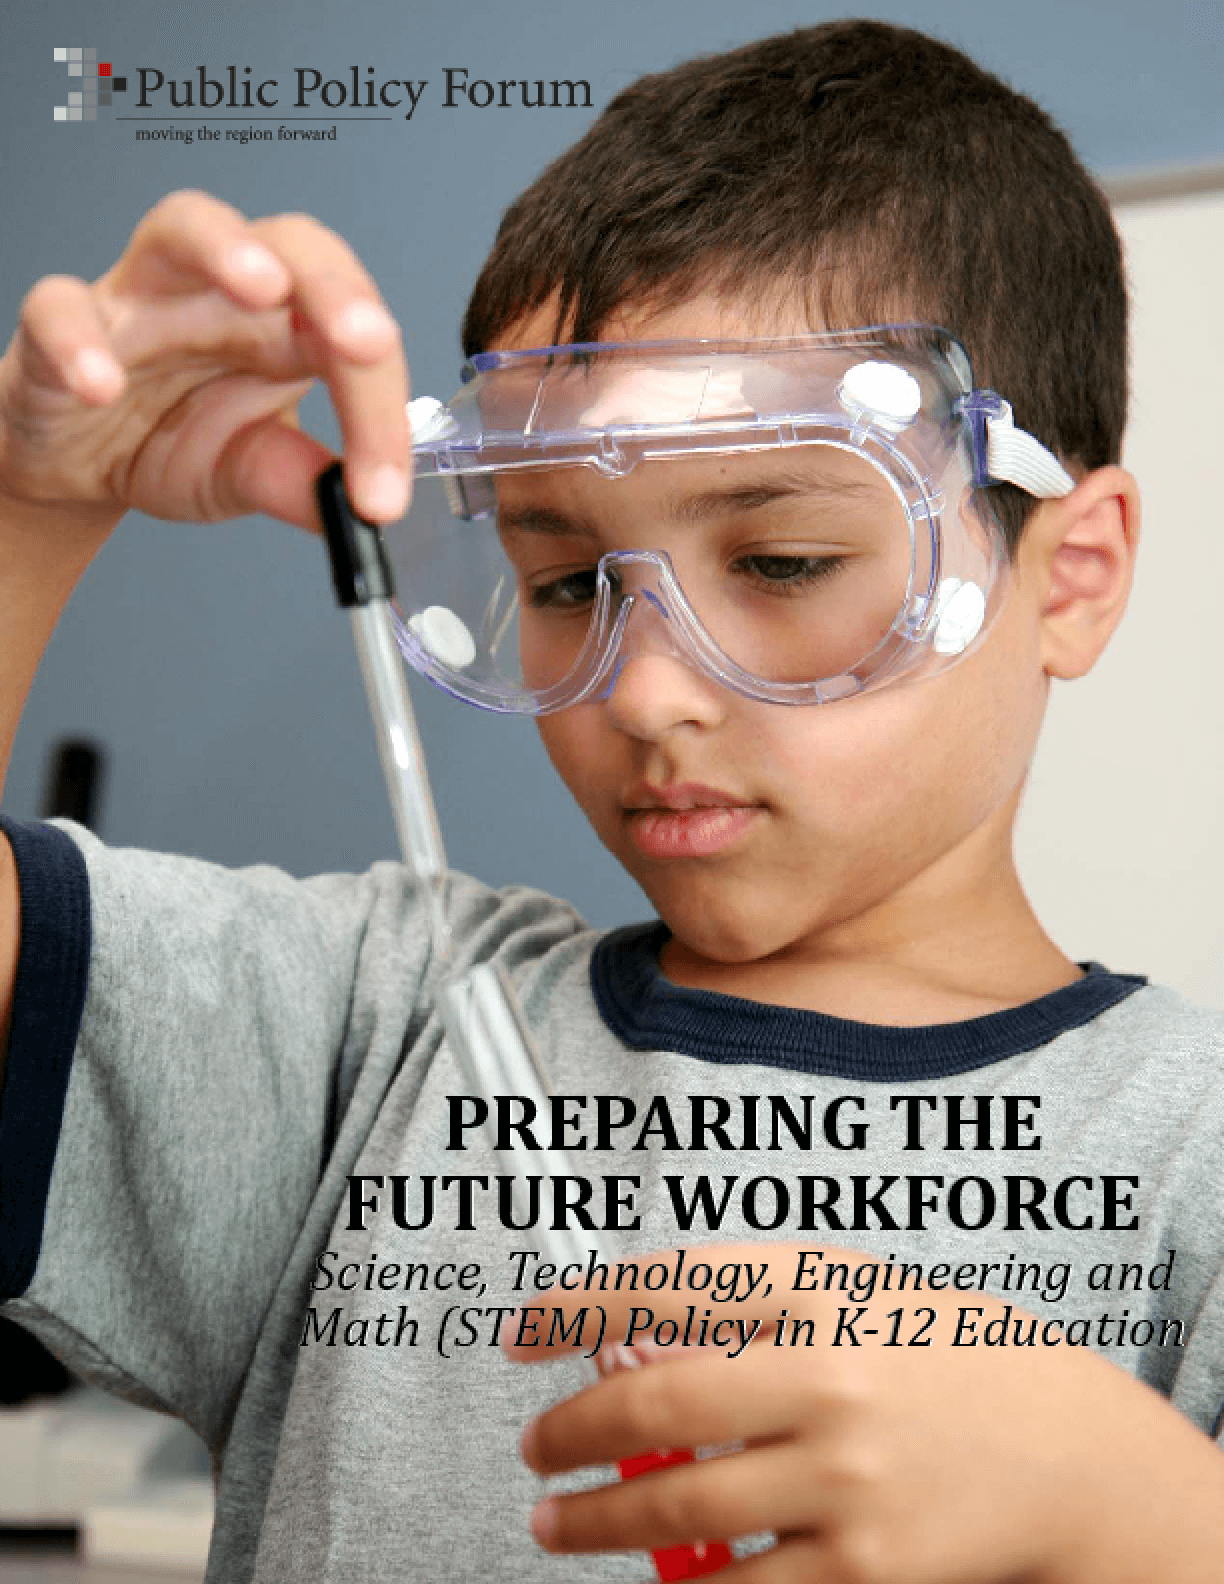 Preparing the Future Workforce: Science, Technology, Engineering and Math (STEM) Policy in K12 Education in Wisconsin